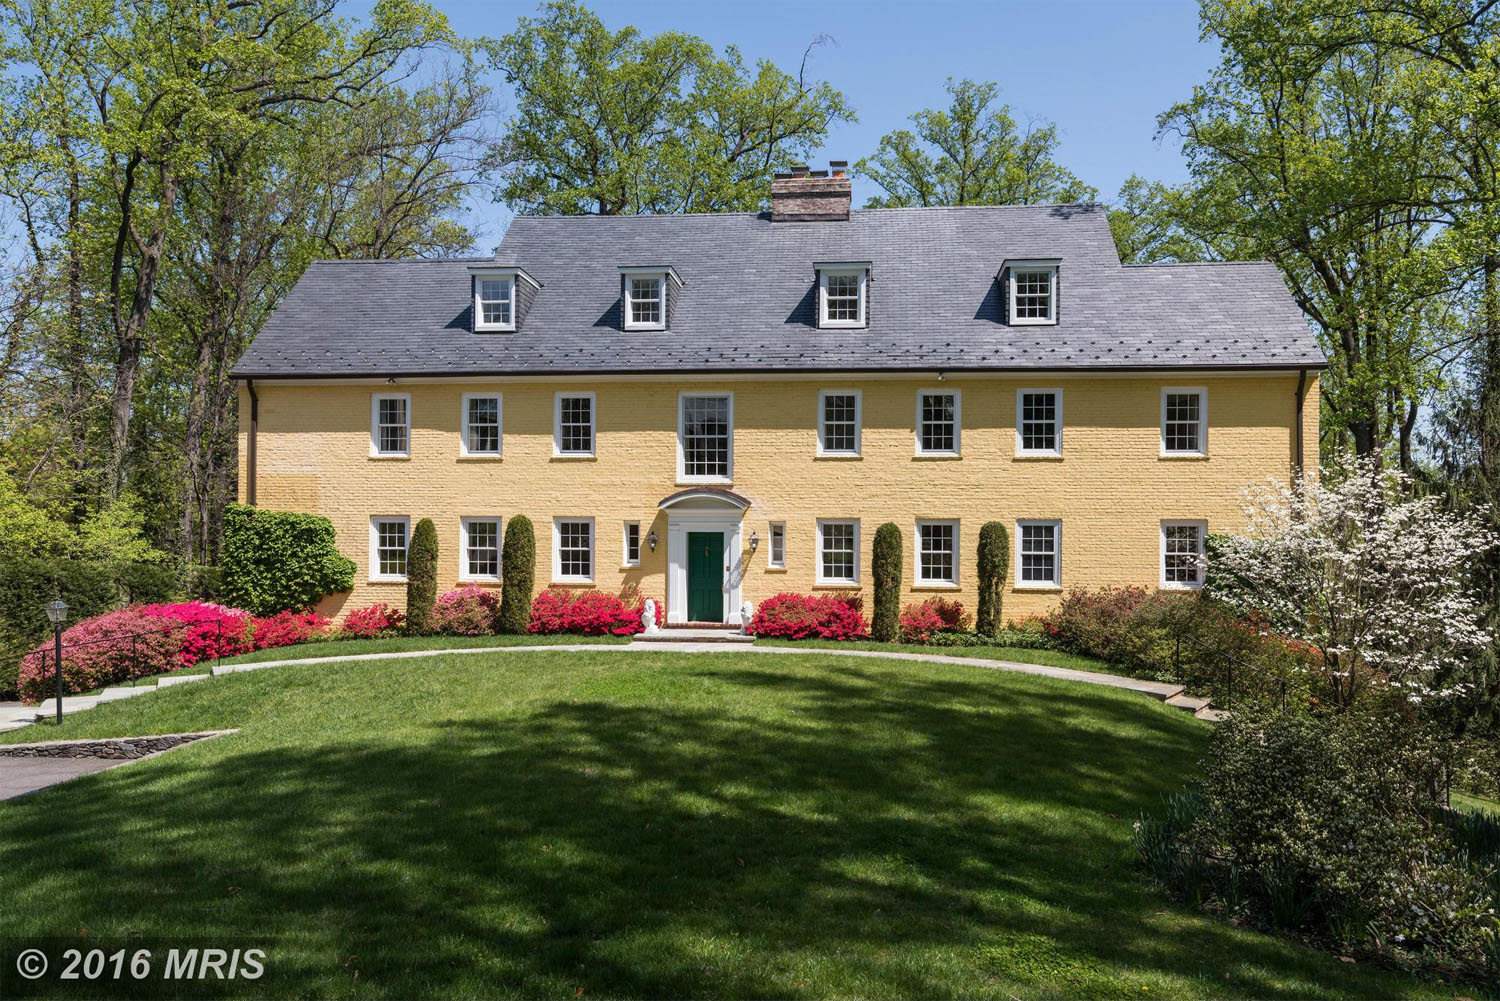 $4,700,000 2501 Foxhall Road NW Washington, D.C.  This Colonial-style home built in 1934 went for $4.7 million in August. The home, located in the Berkley neighborhood of Northwest D.C., has five bedrooms and five bathrooms. (MRIS)